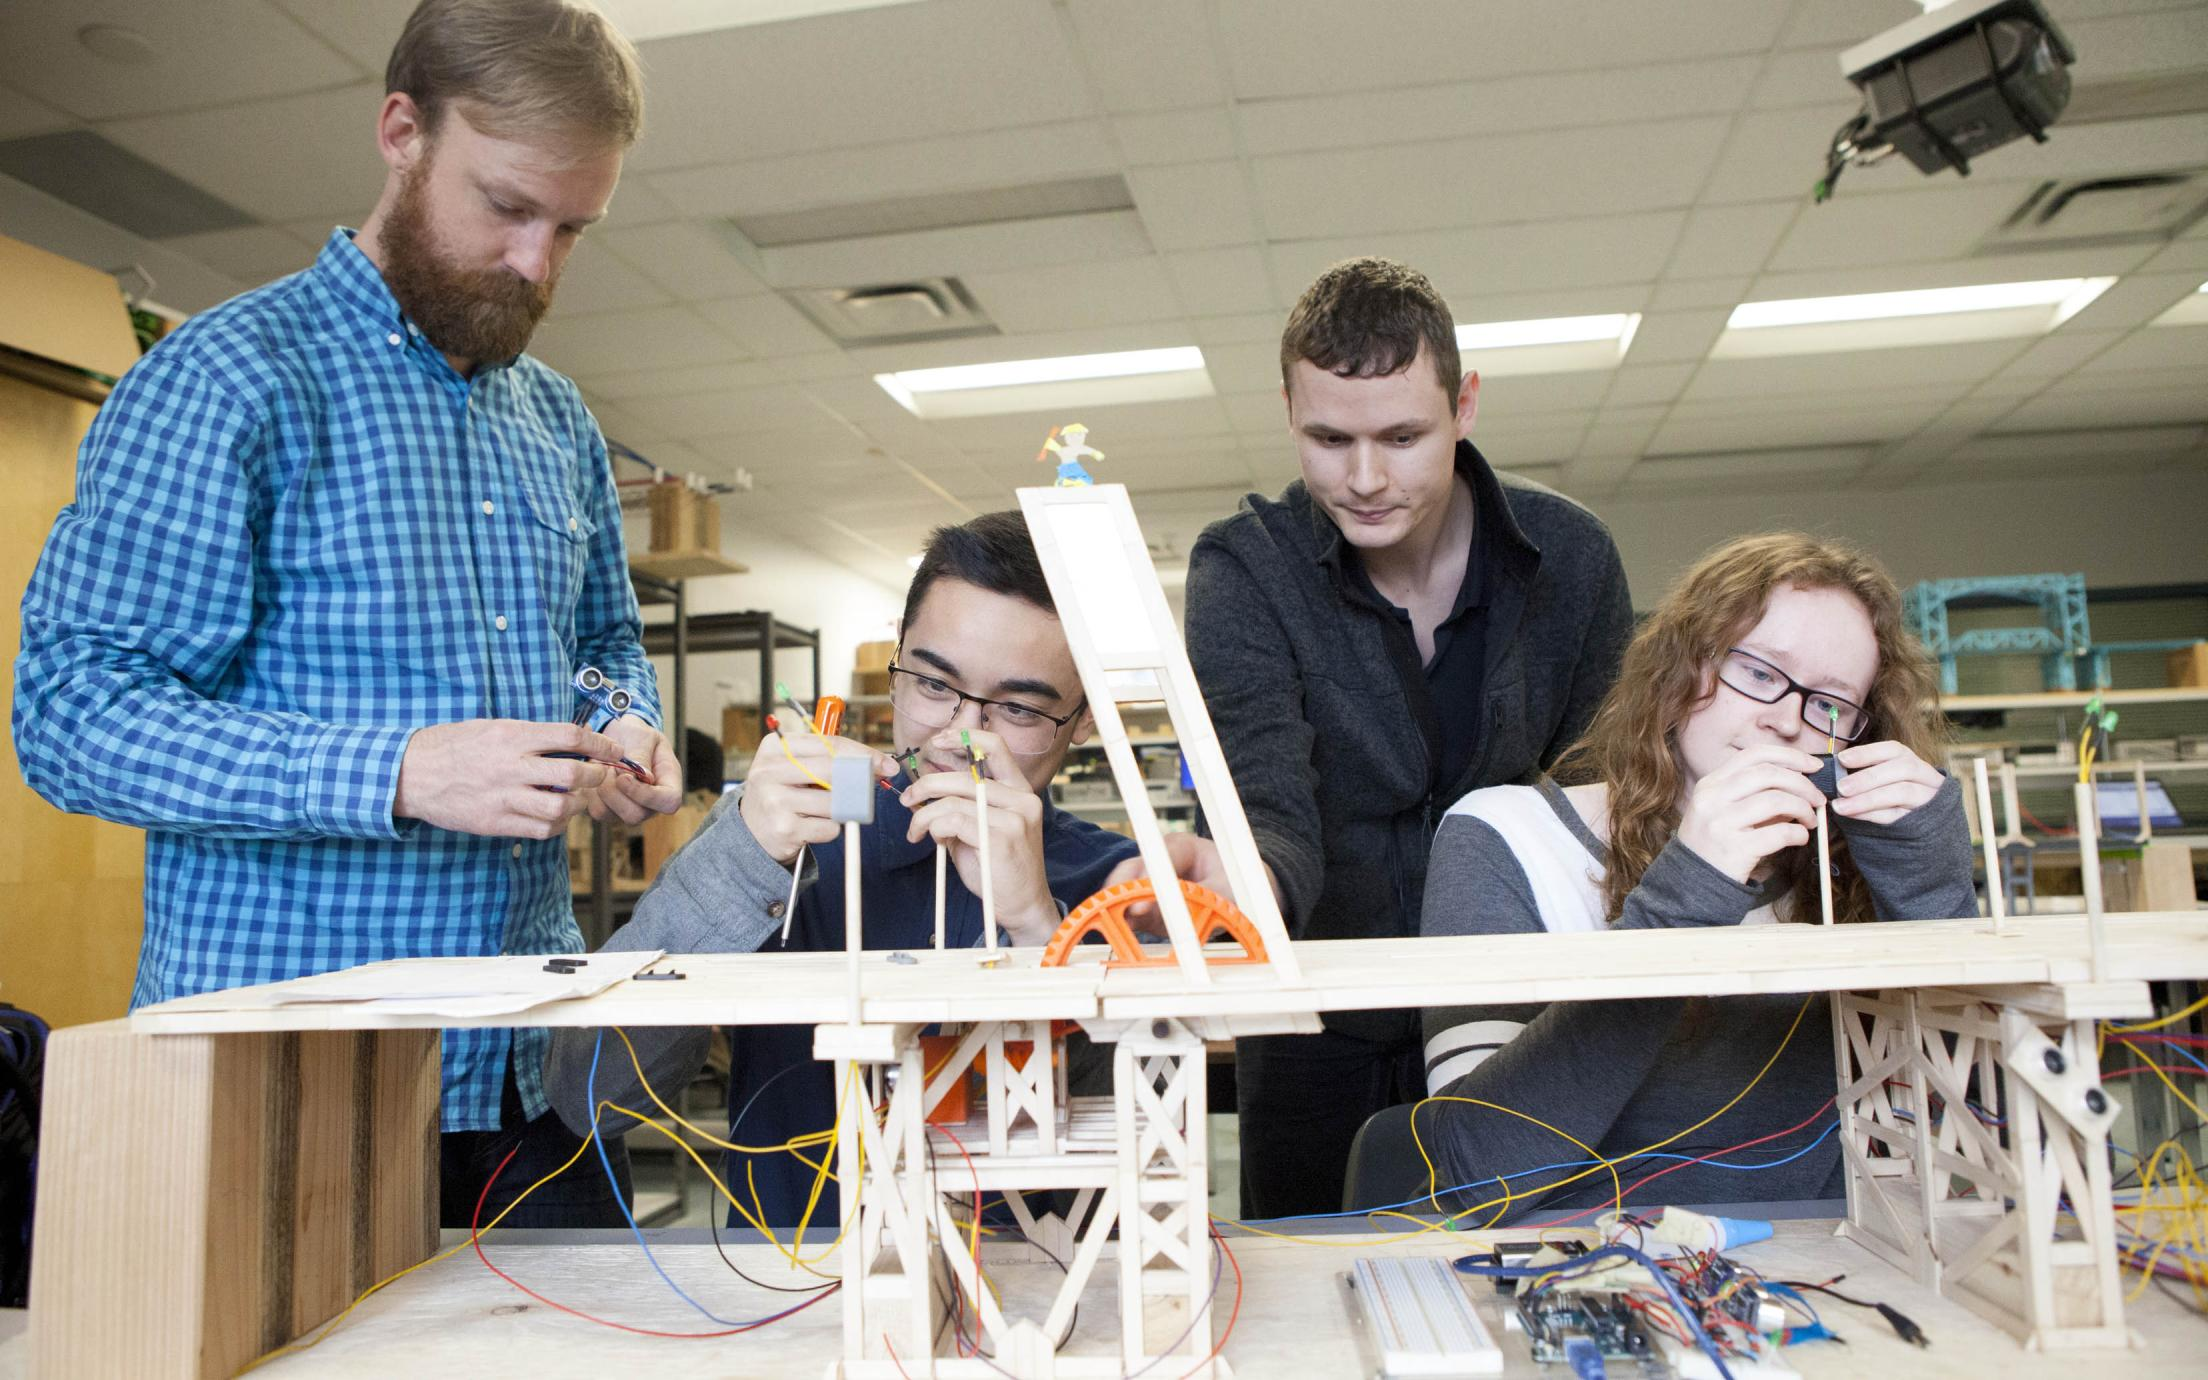 Students of the Fundamentals of Engineering Certificate Program working on a project